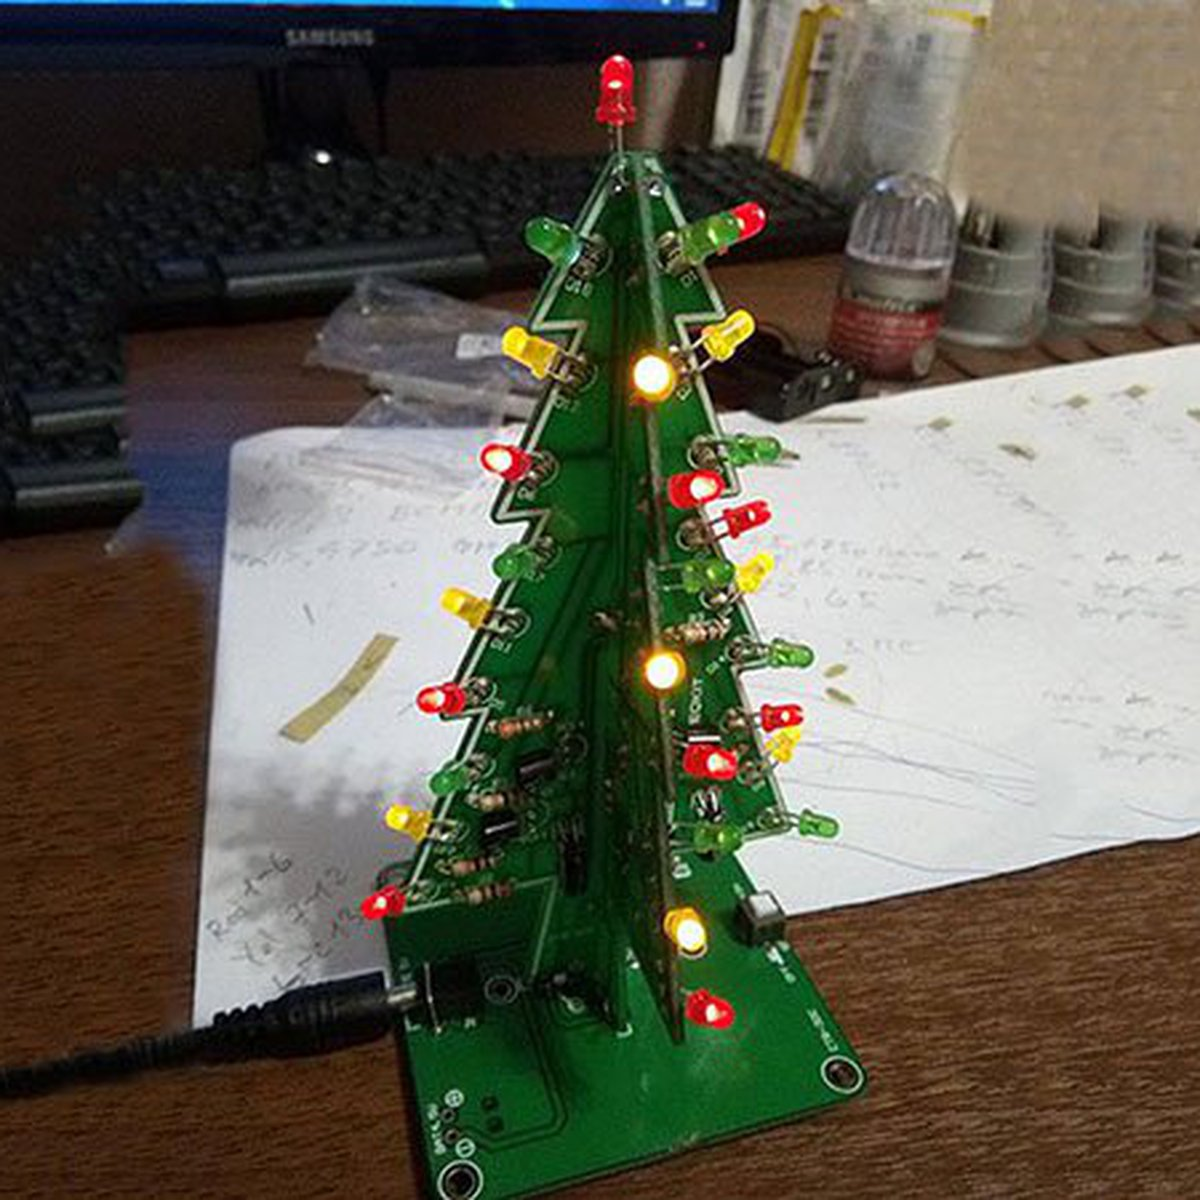 DIY Flashing LED Christmas Tree Circuit Kit(7212) from ... on christmas tree light repair gun, christmas tree light circuit, christmas lights series diagram, christmas tree light battery, christmas light schematic, christmas tree light remote control, christmas tree light switch, christmas tree light sensor, christmas tree lighting diagram, christmas tree light connectors, car kill switch diagram, led christmas light diagram, christmas tree outline, christmas tree light fuse, christmas tree template, christmas tree light timer, christmas tree light frame, christmas tree light installation, christmas tree light tester walmart, christmas light string wiring,